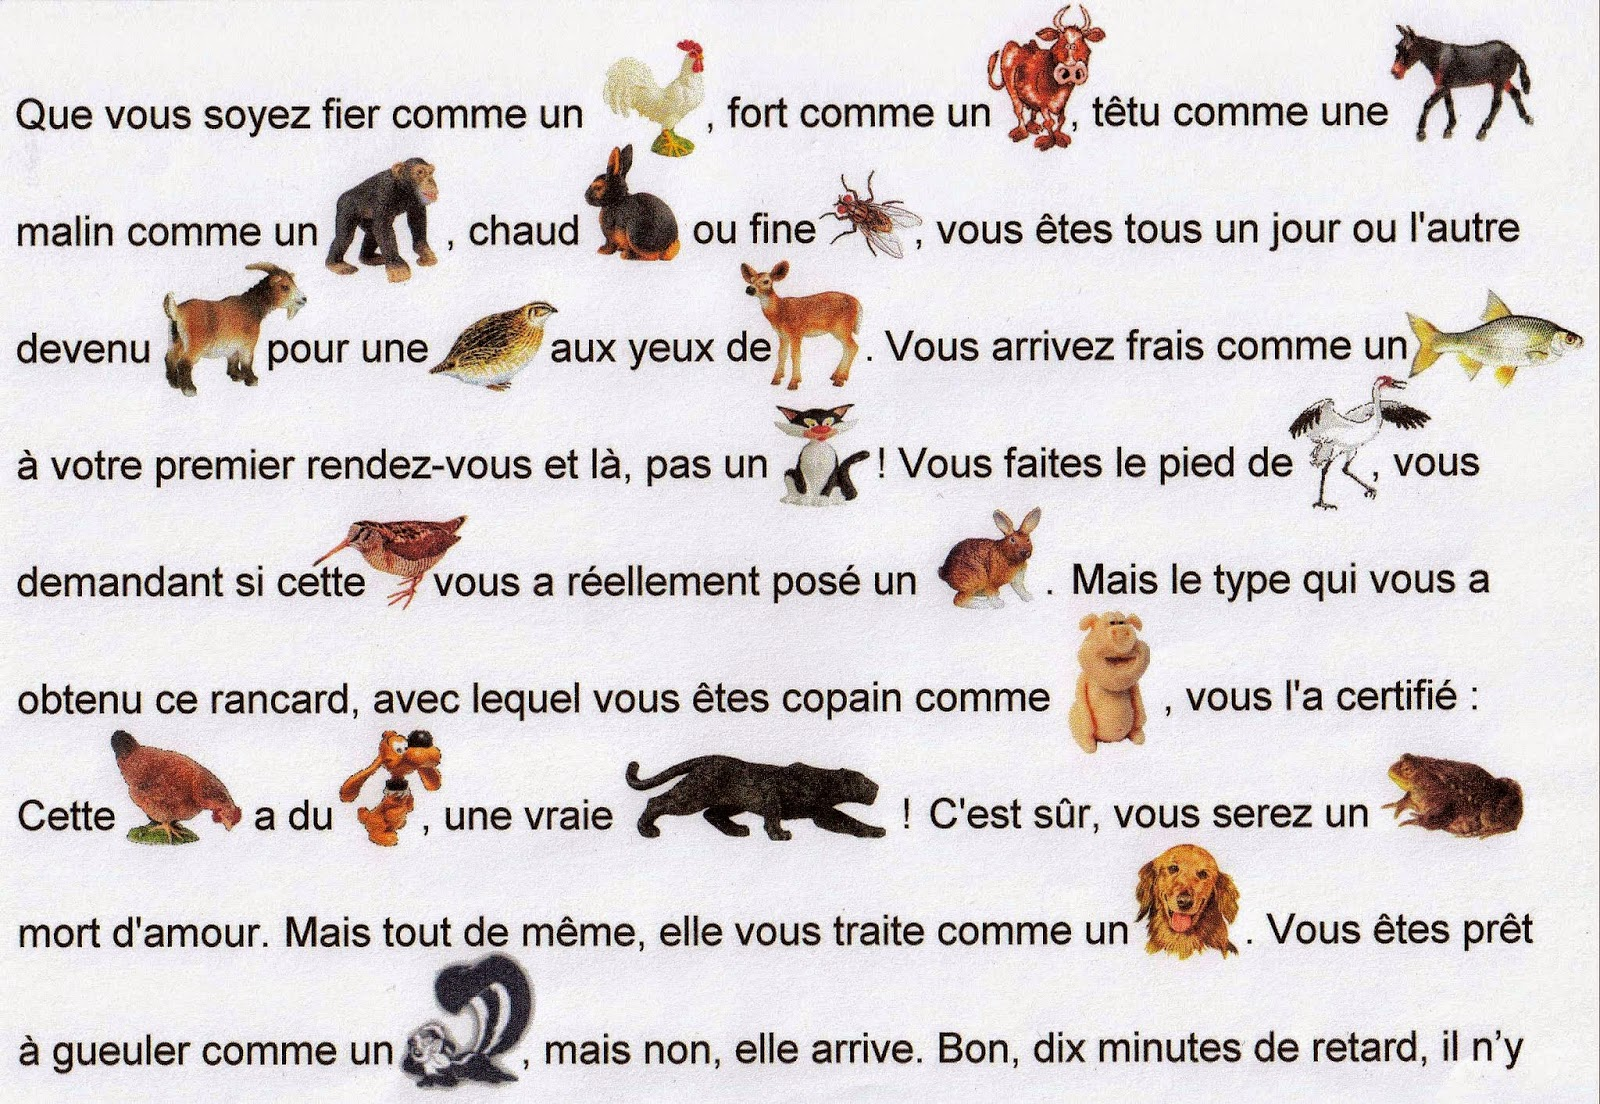 Chat Traduction Dictionnaire Des Animaux Bv75 Jornalagora